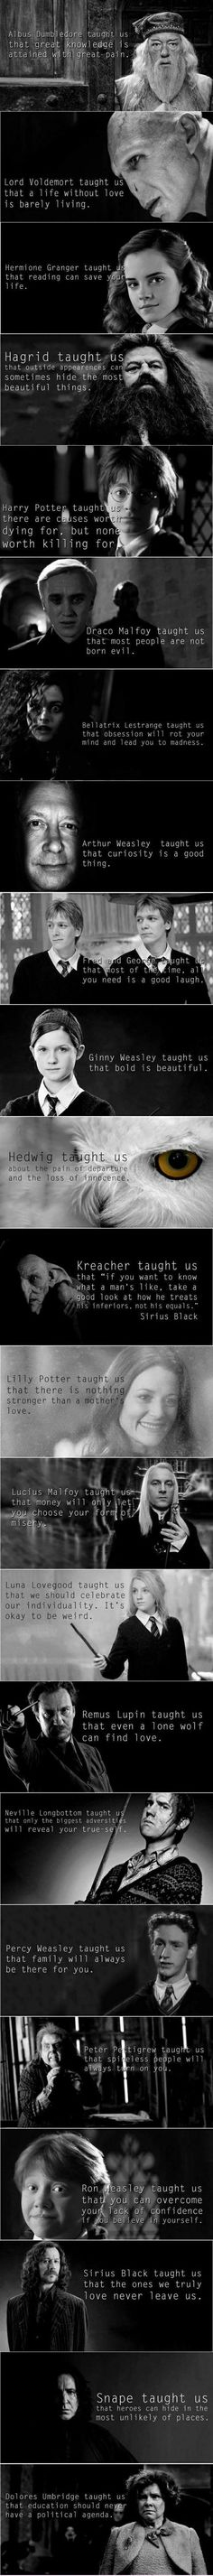 What the Harry Potter books thought us..  (Ron's though... you can overcome lack of confidence with confidence. lol)